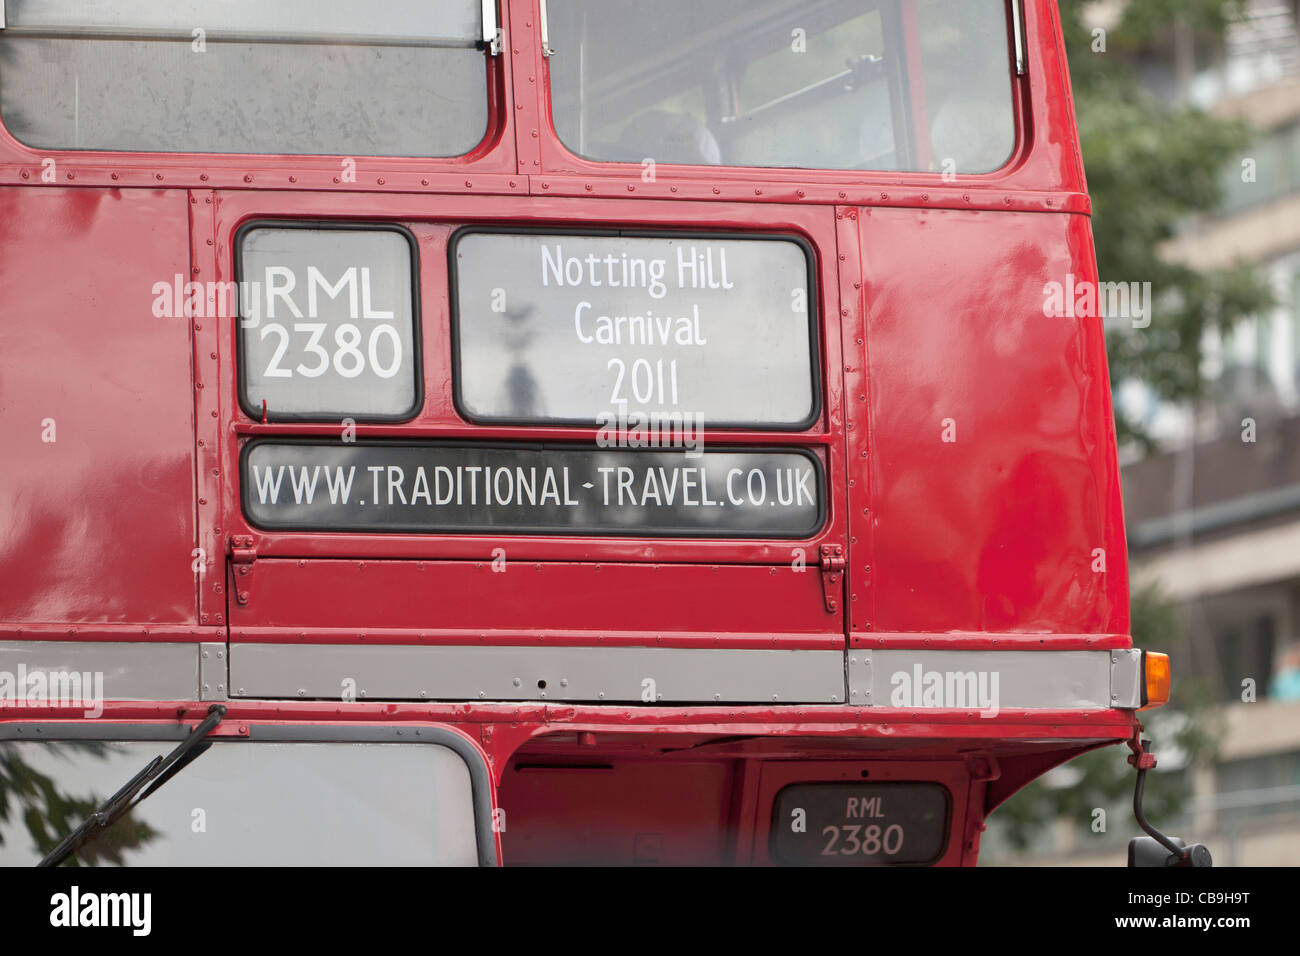 NOTTING HILL CARNIVAL RED BUS, LONDON, ENGLAND - Stock Image